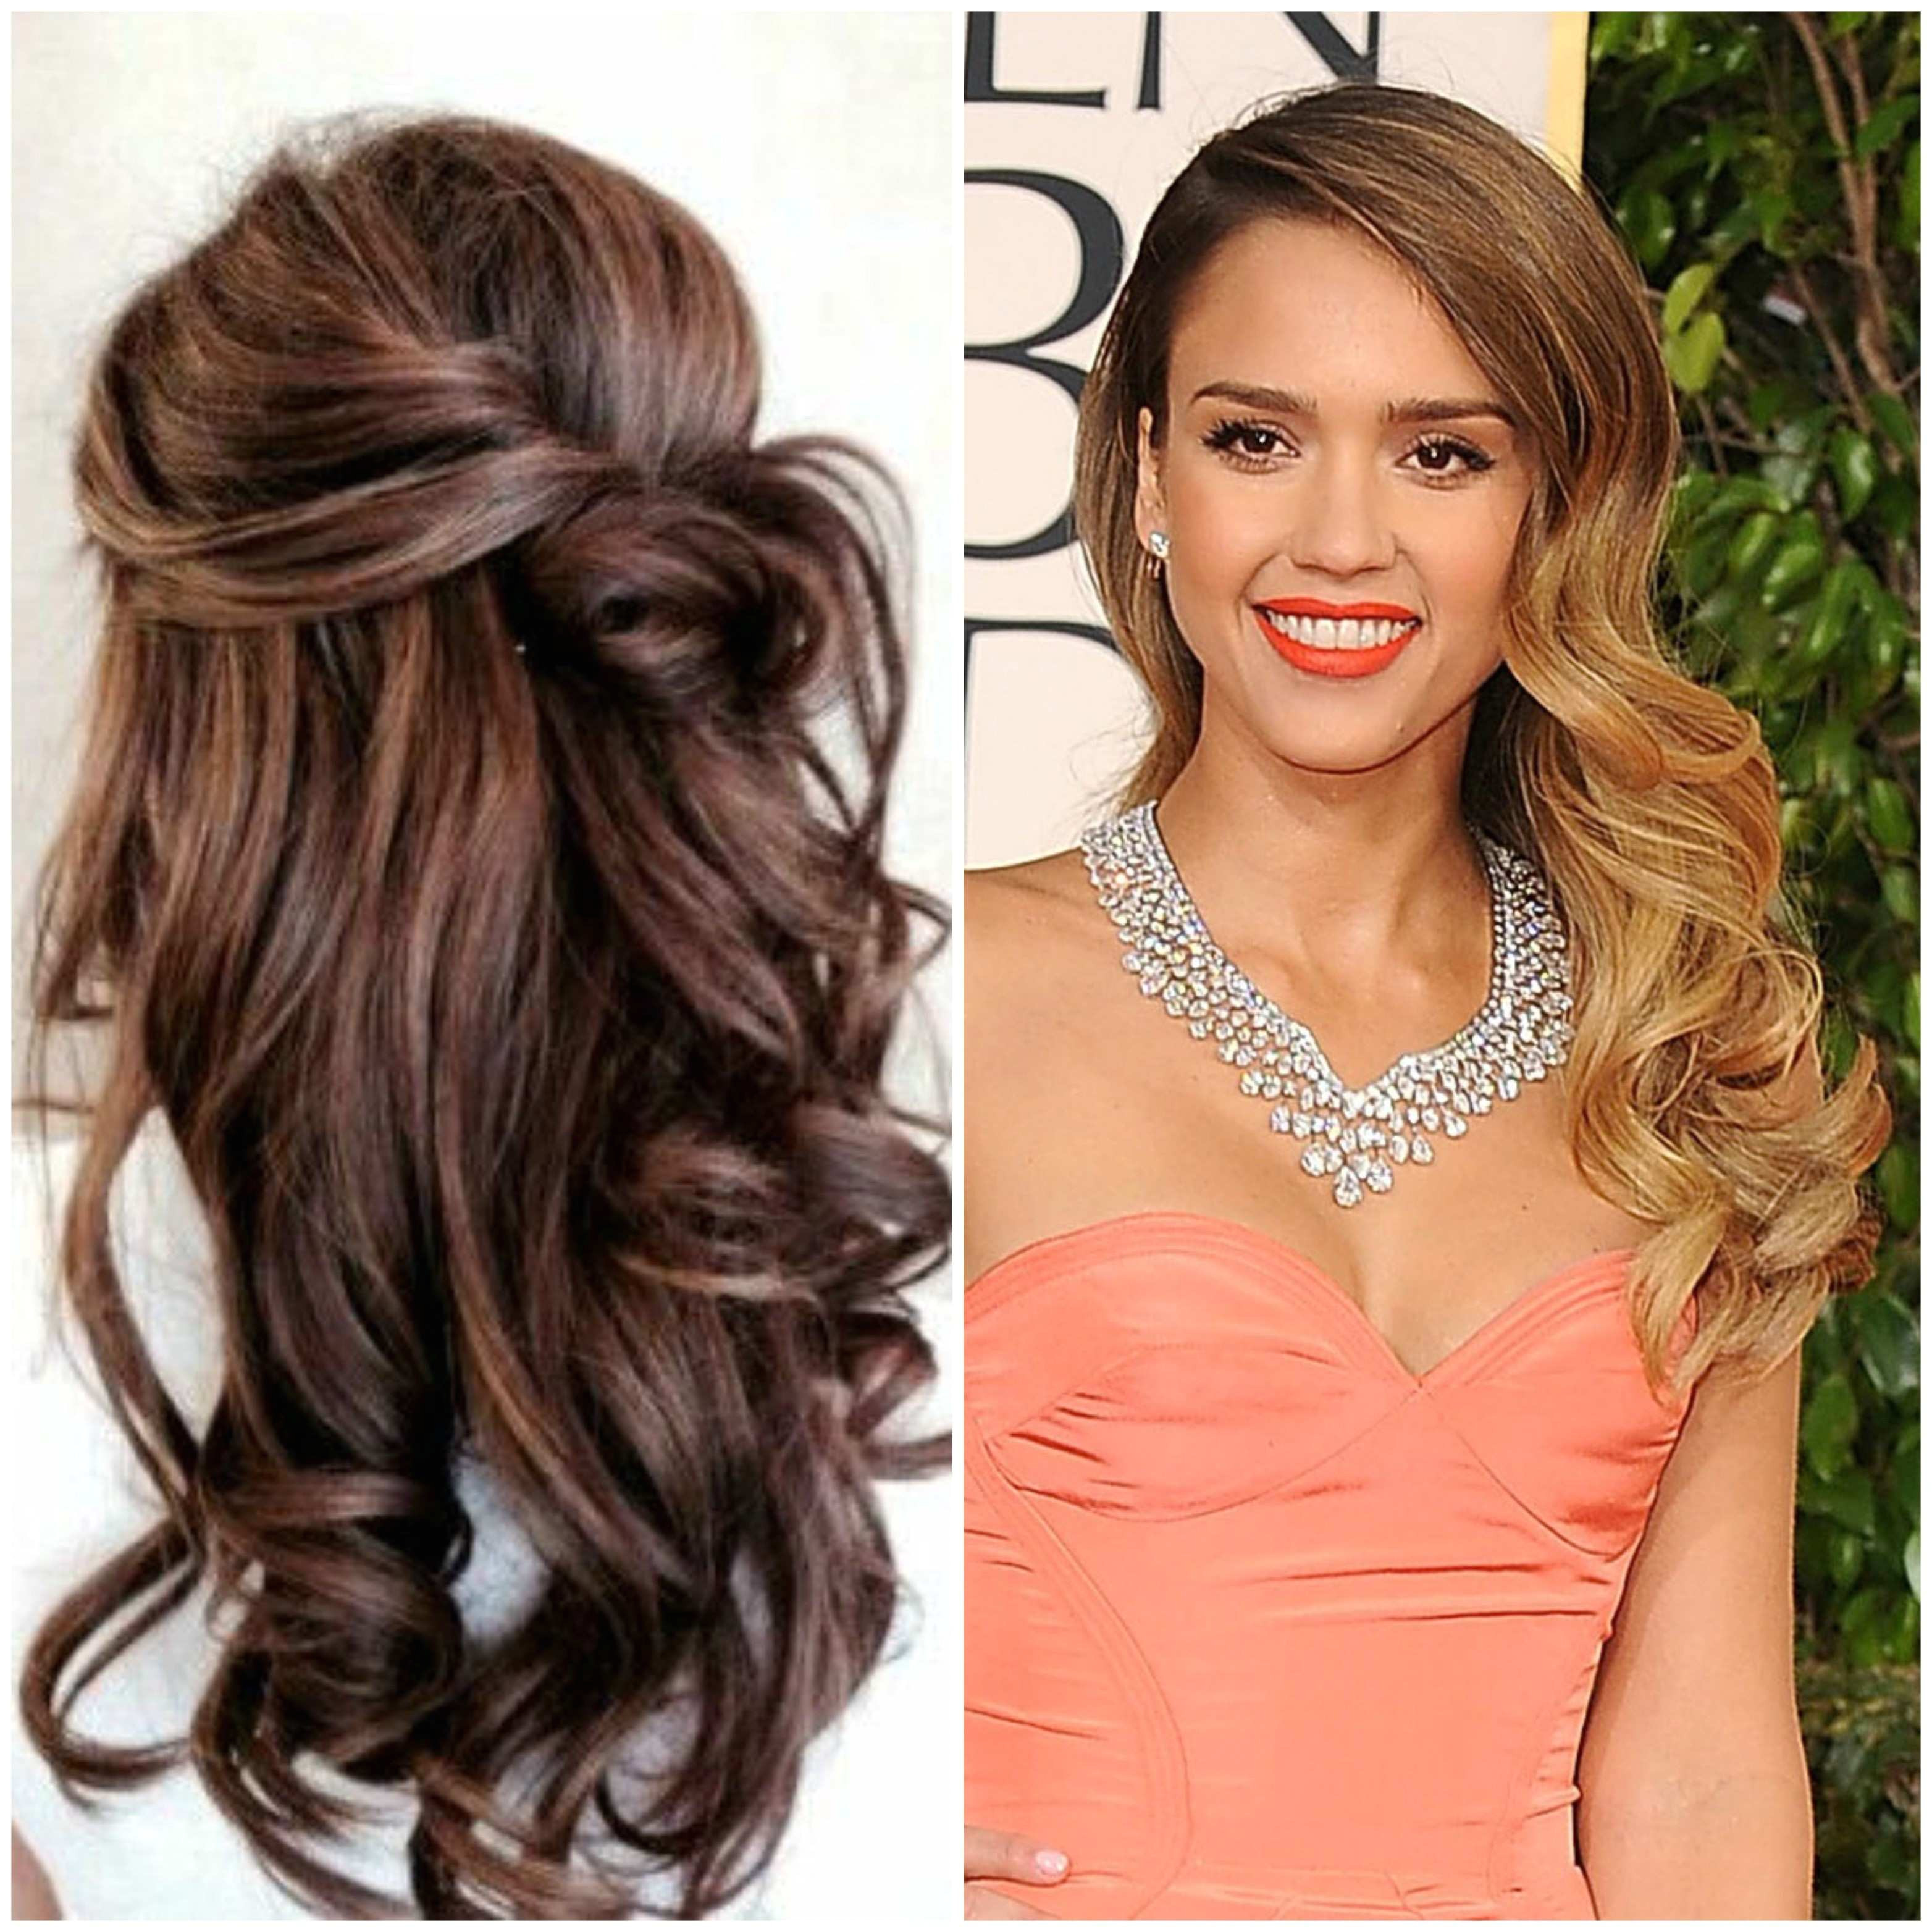 Hairstyles for A Birthday Girl Lovely New Black Little Girl Wedding Hairstyles Hardeeplive Hairstyles for